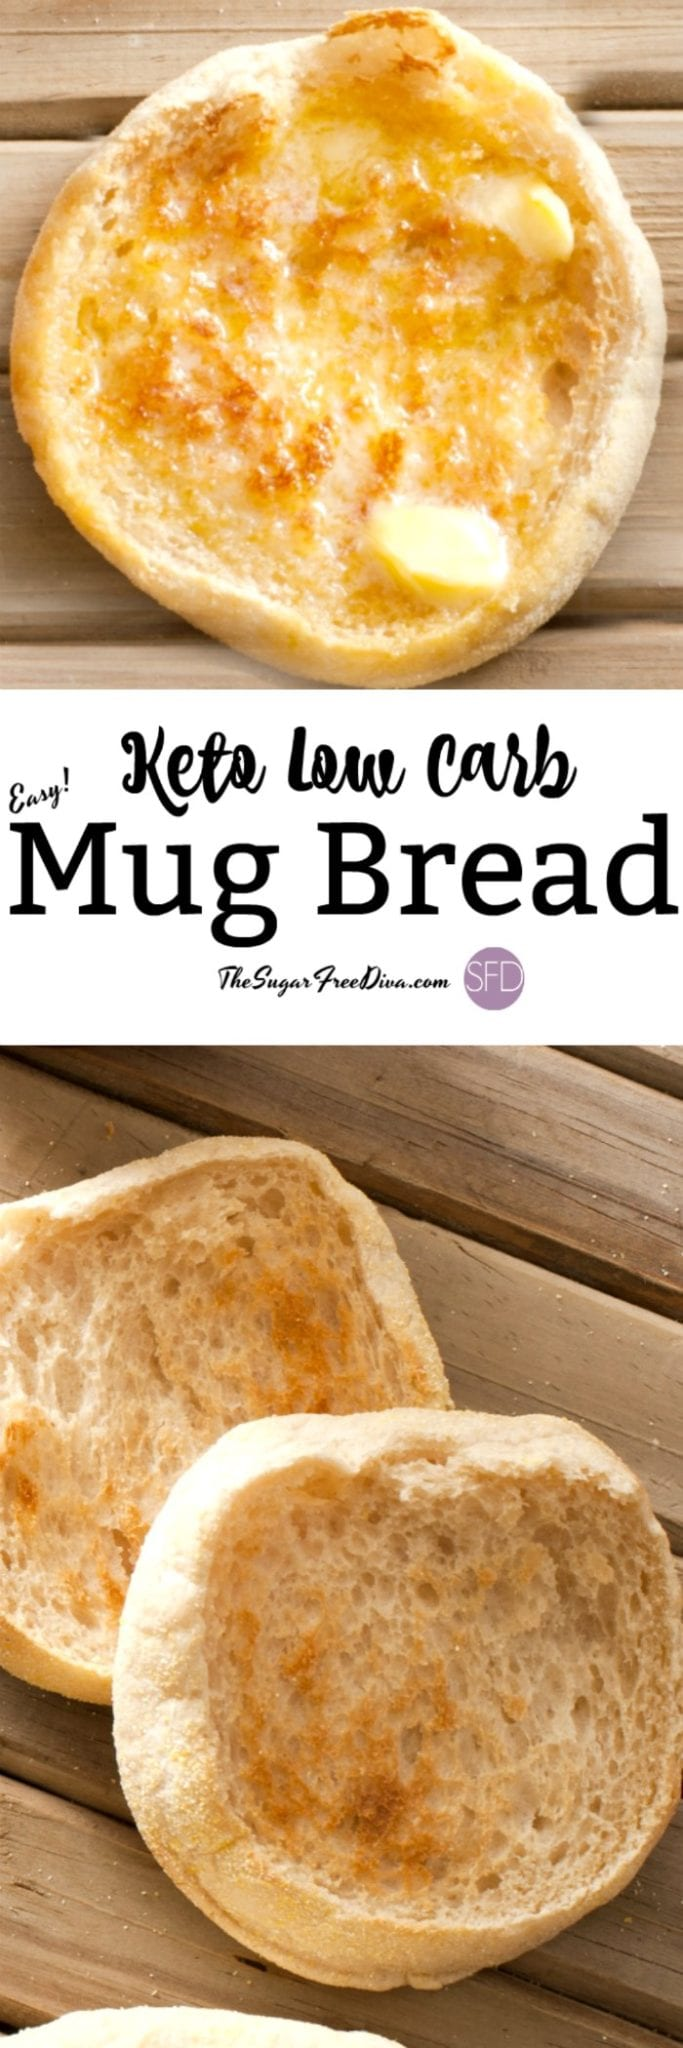 Easy And Yummy Keto Low Carb Mug Bread Recipe